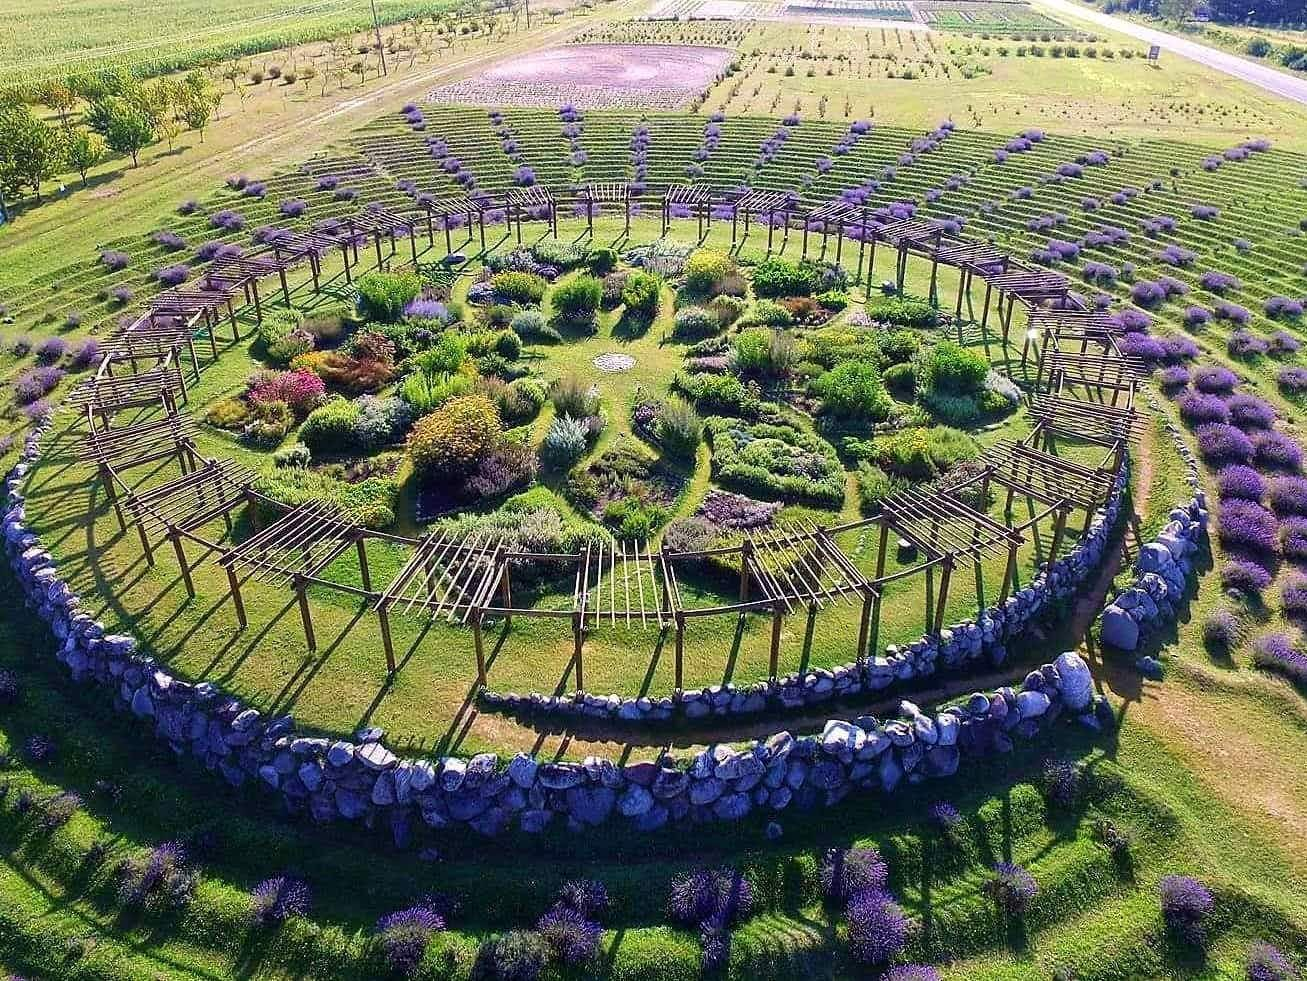 Wander through this lavender labyrinth in the most unlikely place